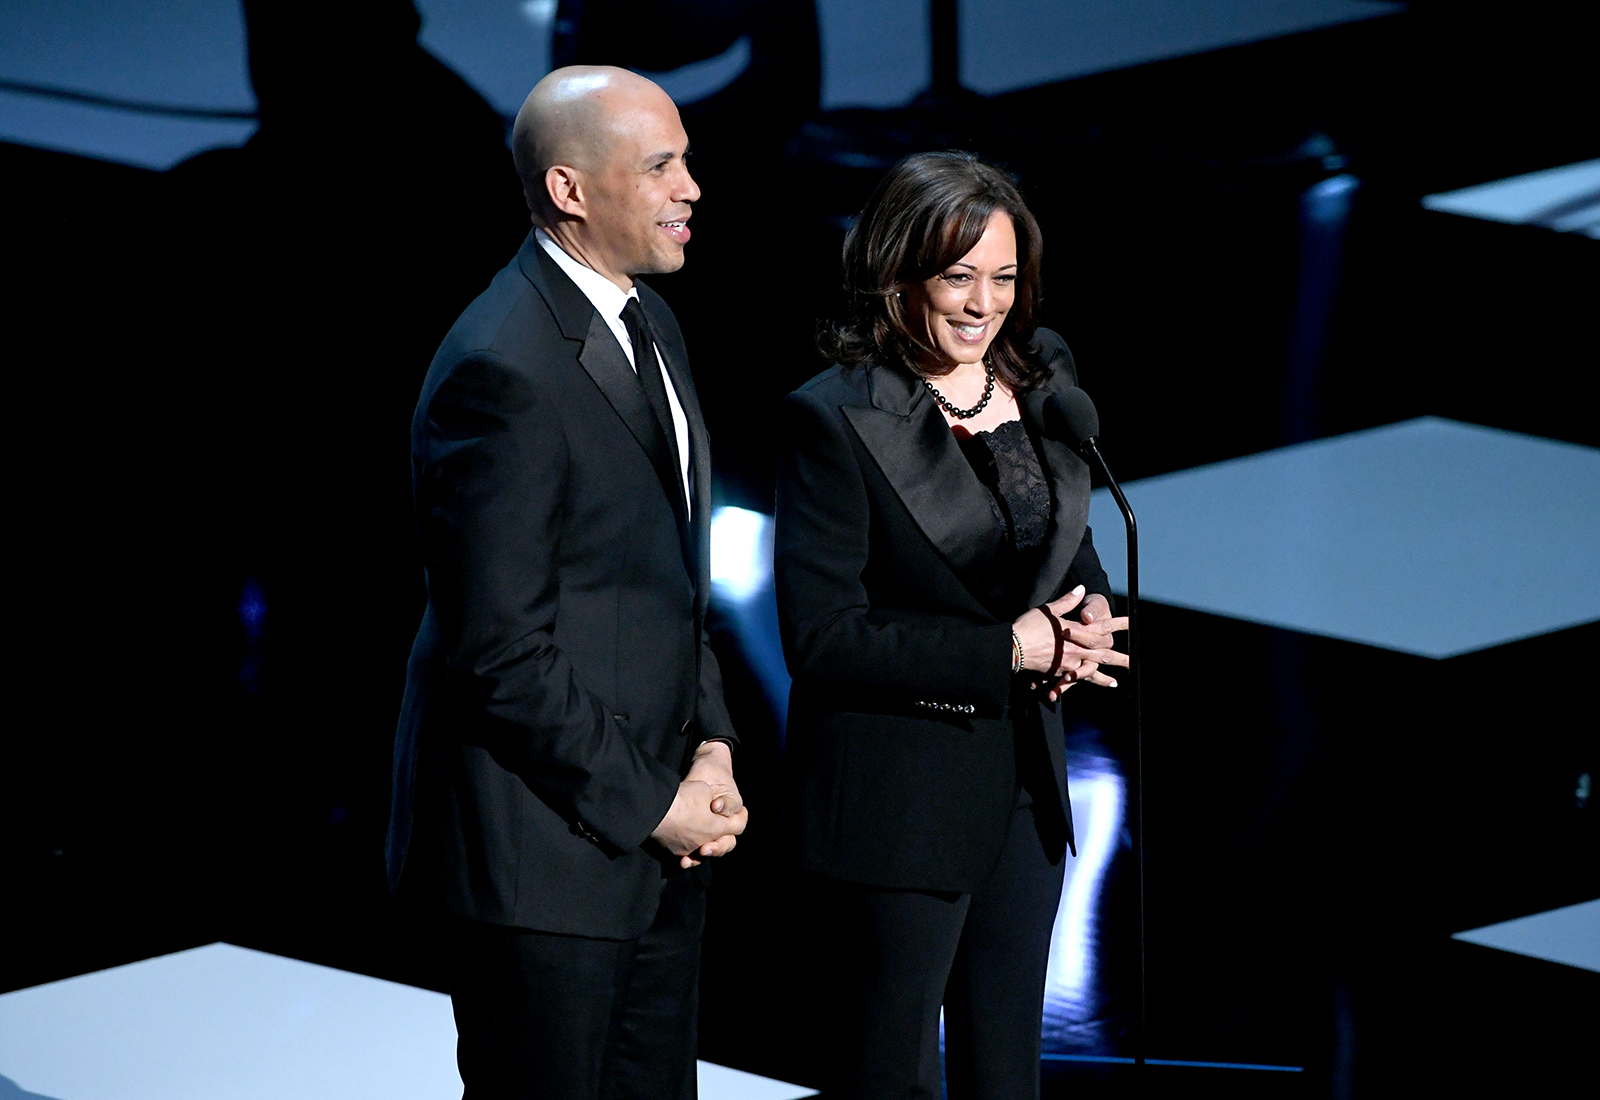 Cory Booker and Kamala Harris speak onstage at the 50th NAACP Image Awards at Dolby Theatre on March 30, 2019 in Hollywood, California.